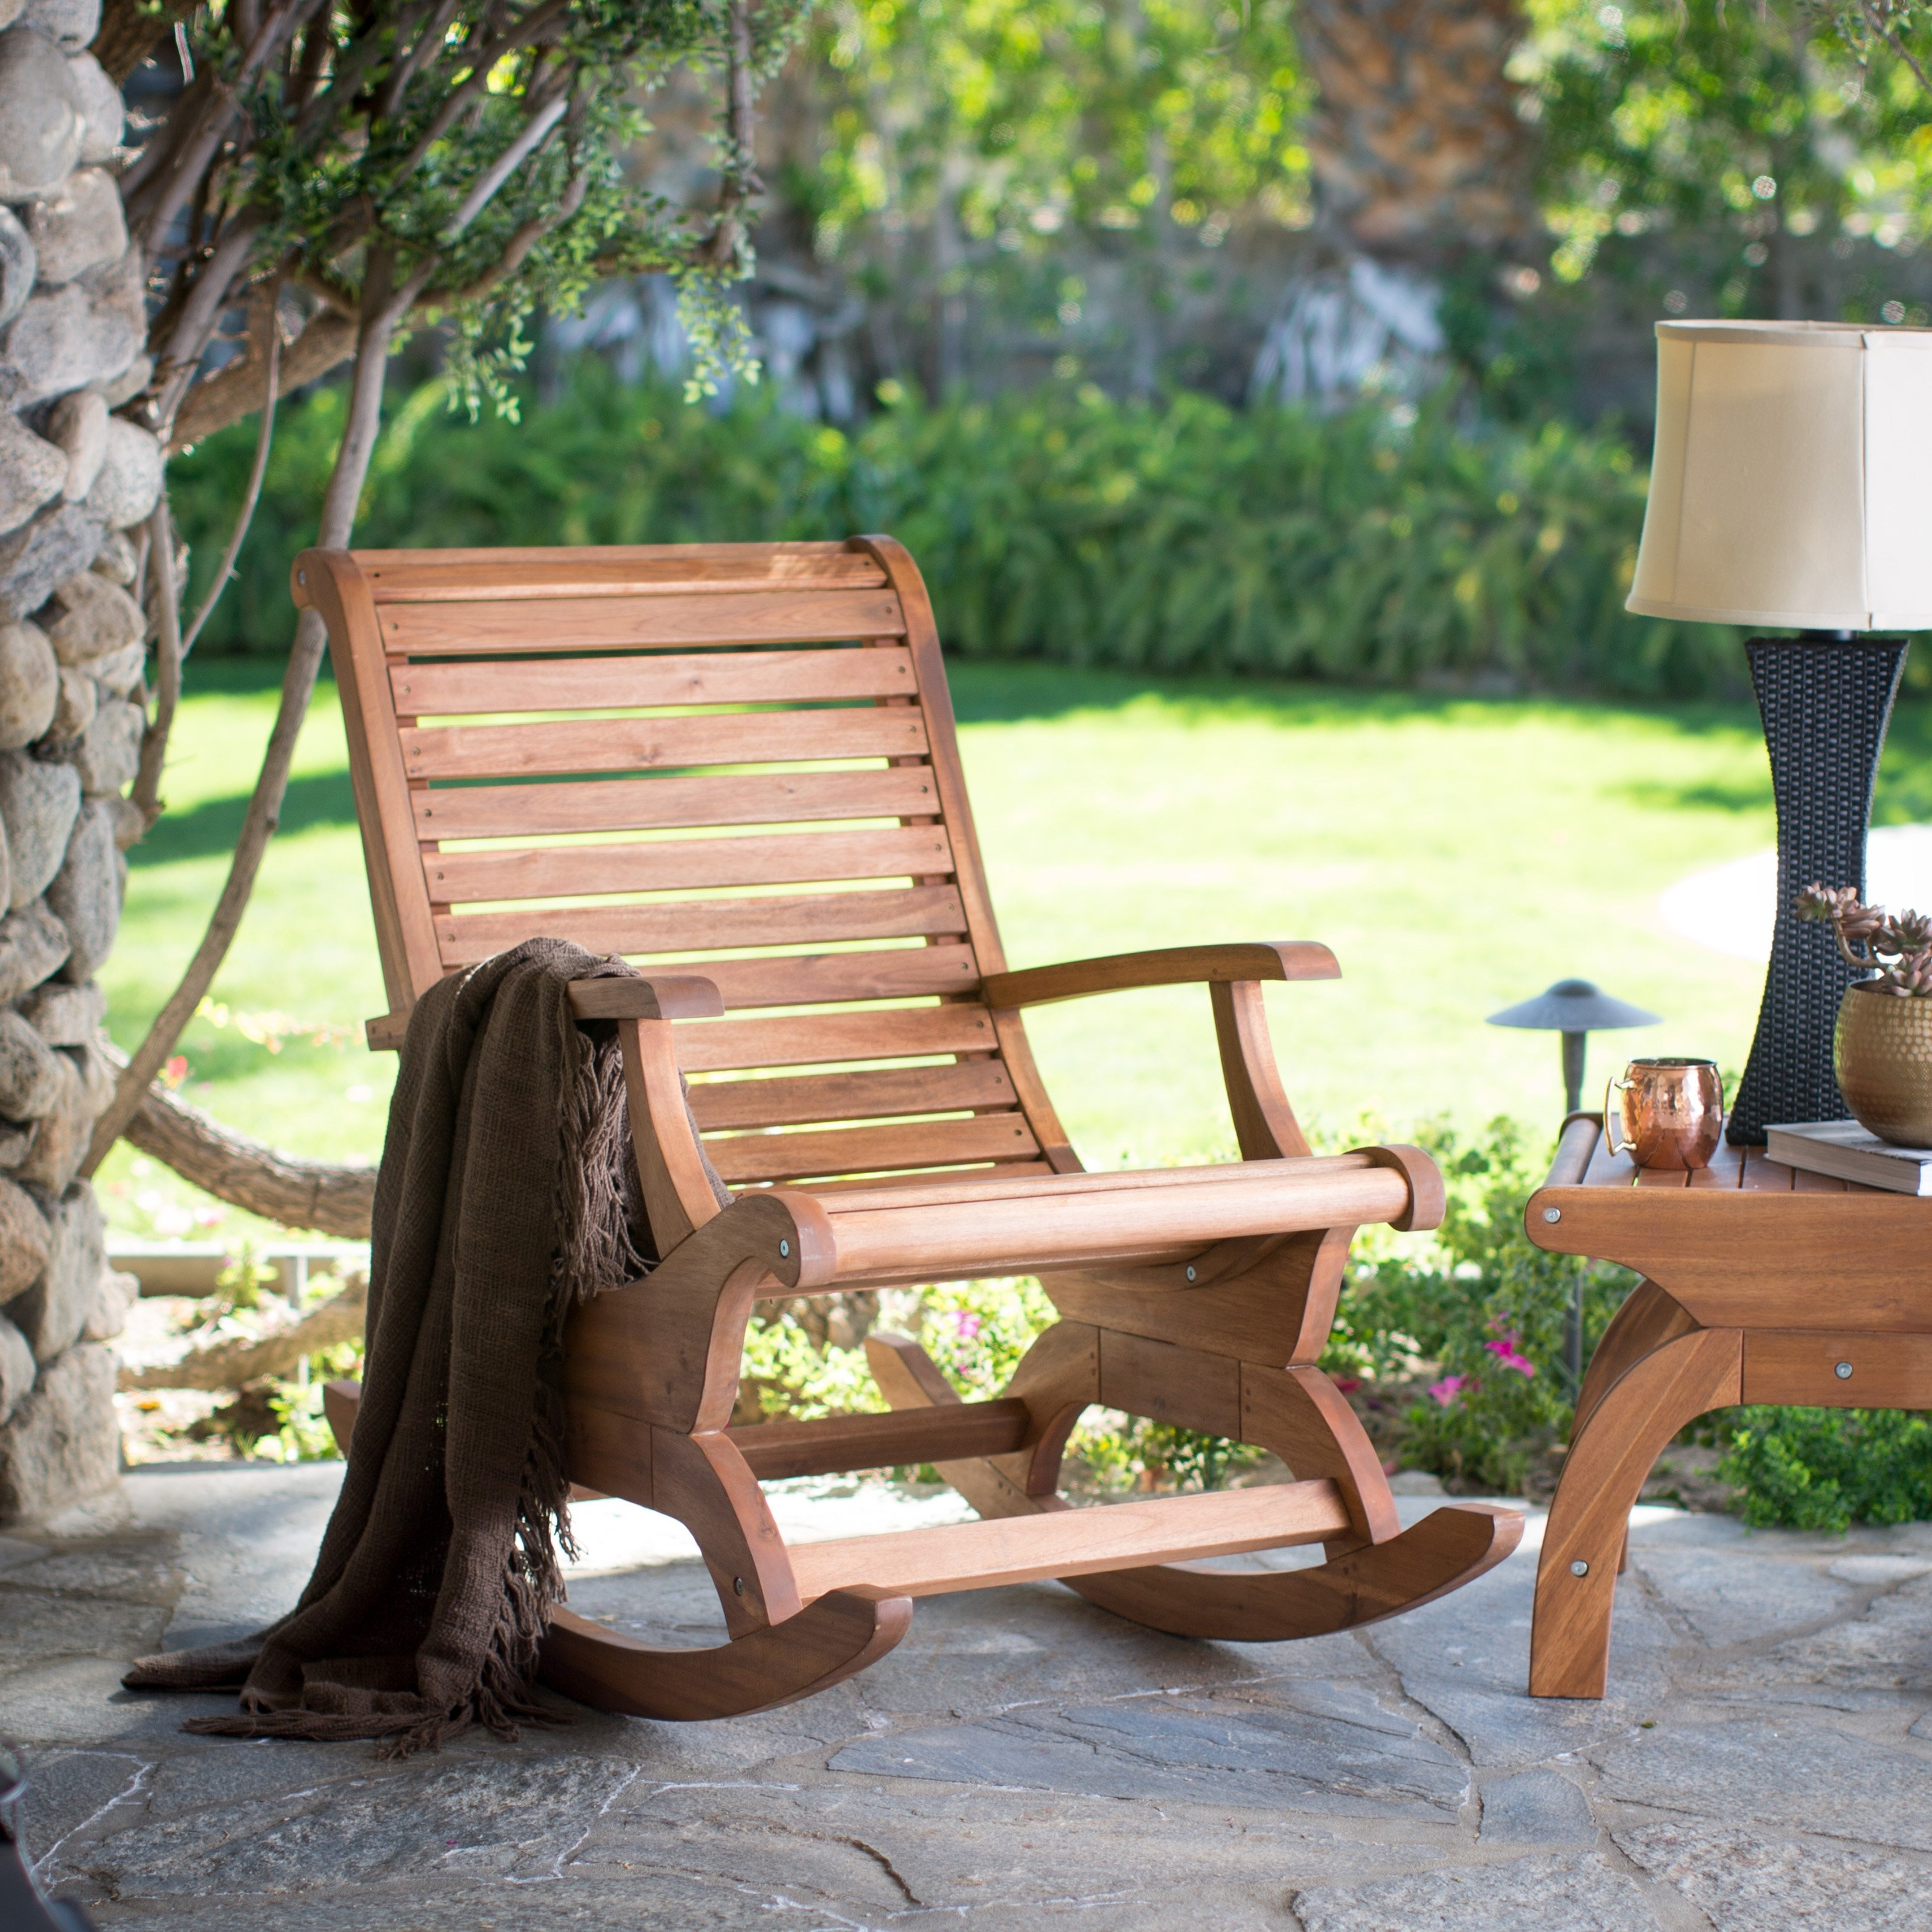 Preferred Patio Rocking Chairs Throughout Outdoor Rocking Chair : Time To Relax – Goodworksfurniture (View 15 of 20)